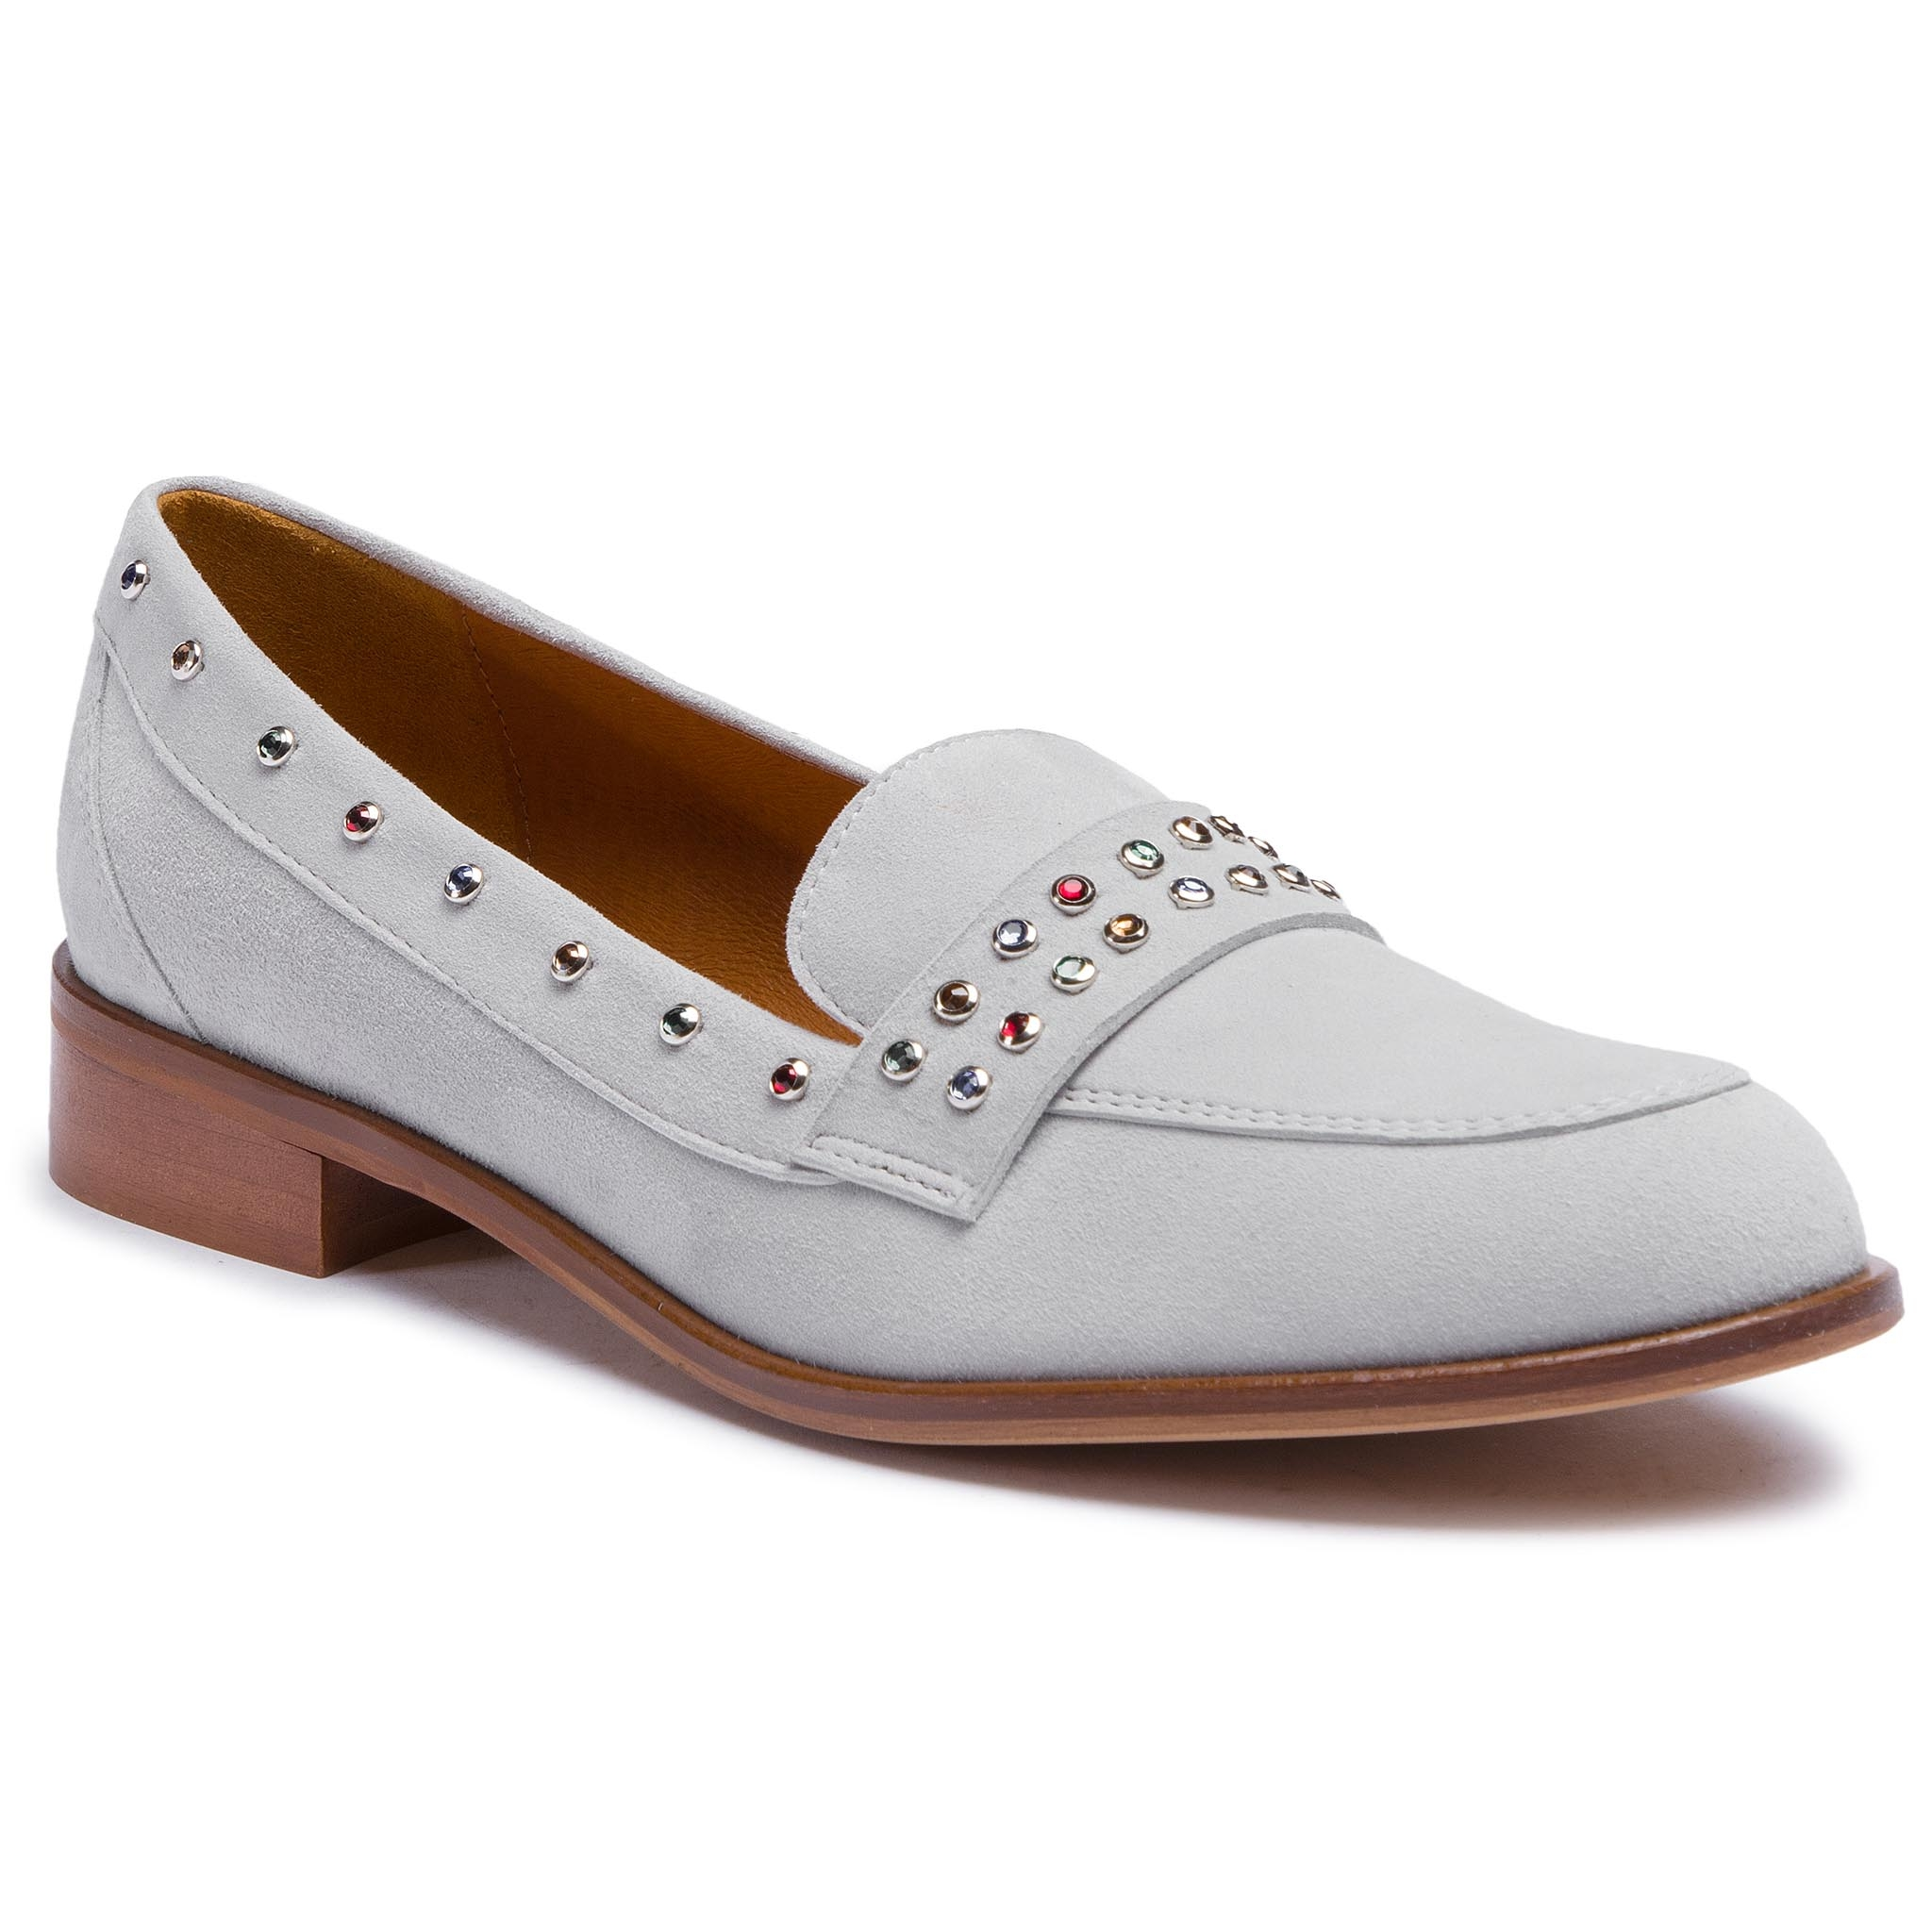 Loafers SOLO FEMME - 96642-05-G15/000-03-00 Jasny Szary